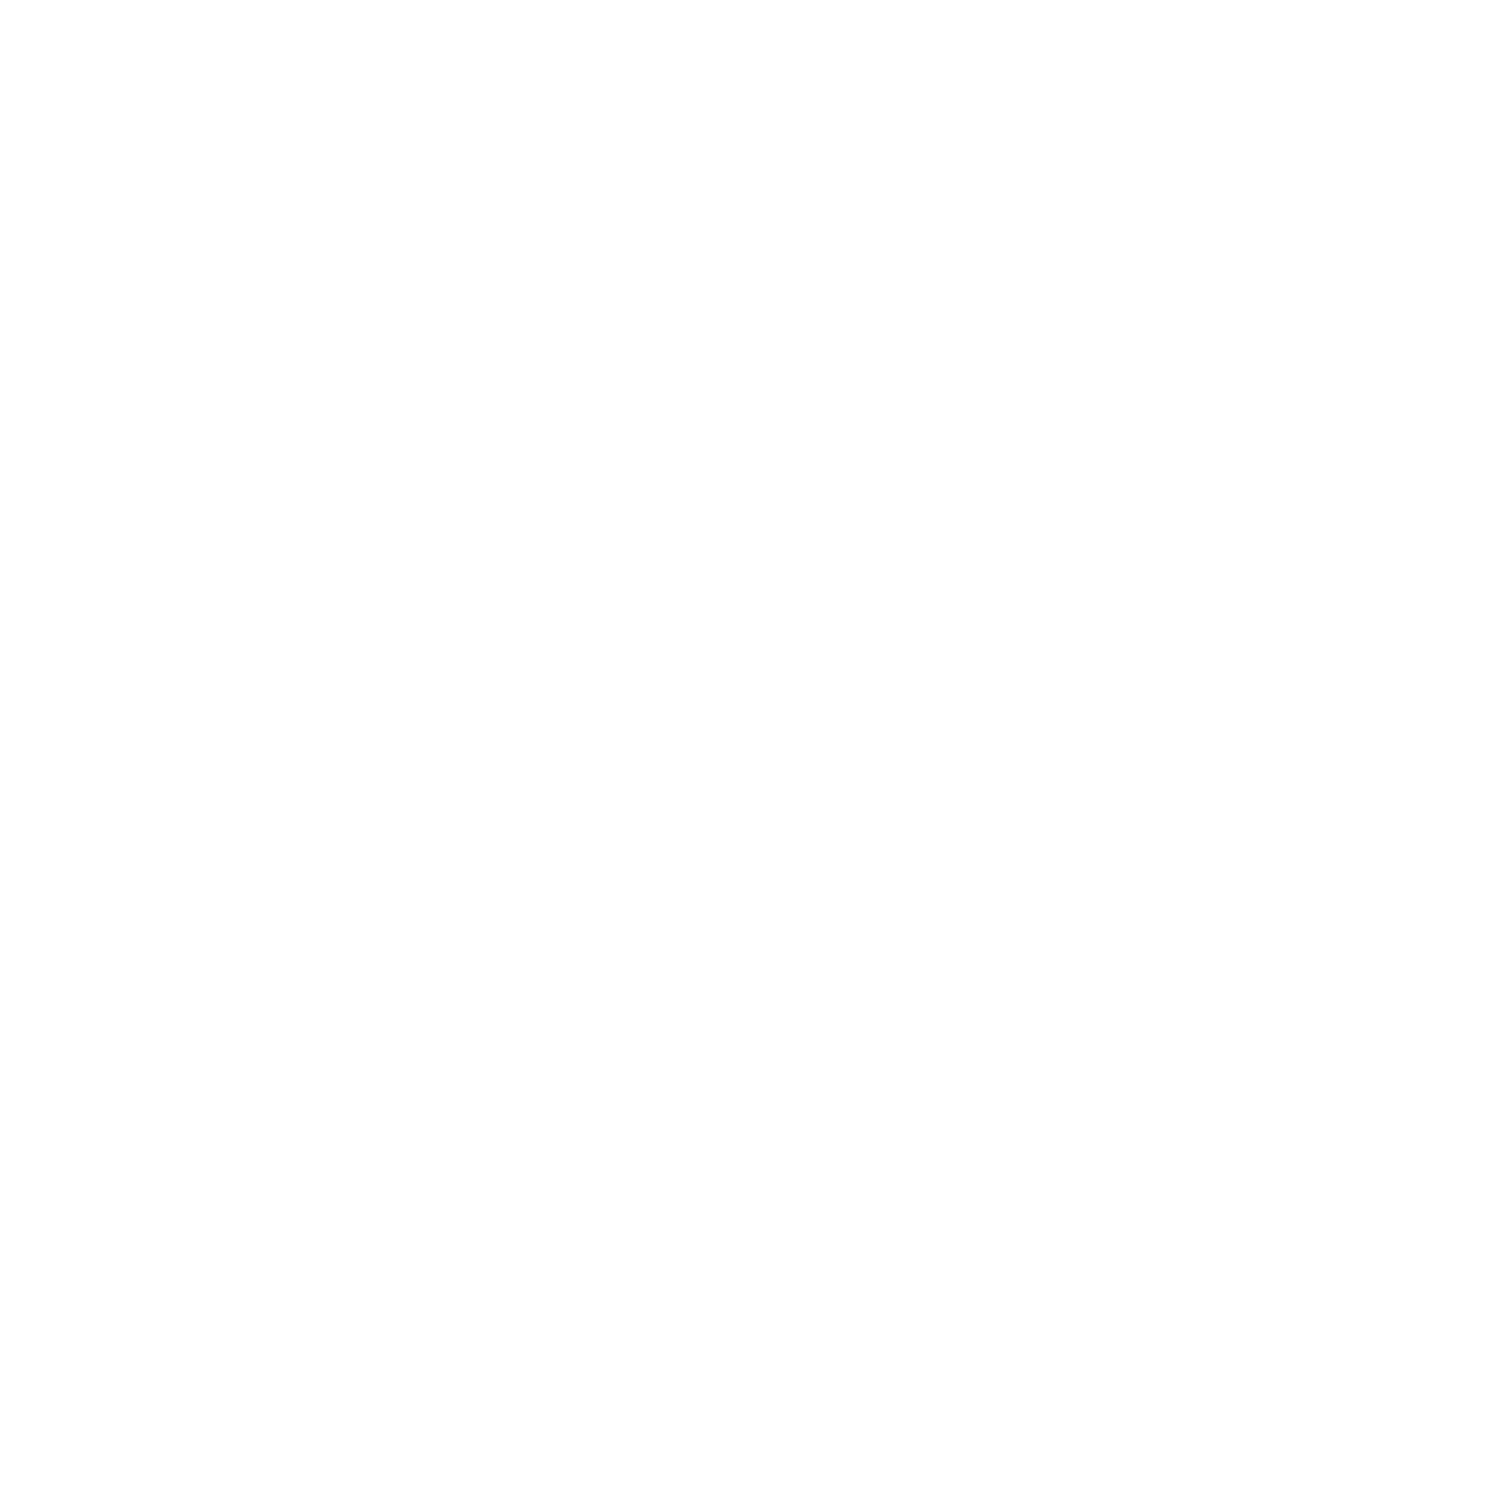 THE BUDD GROUP white logo